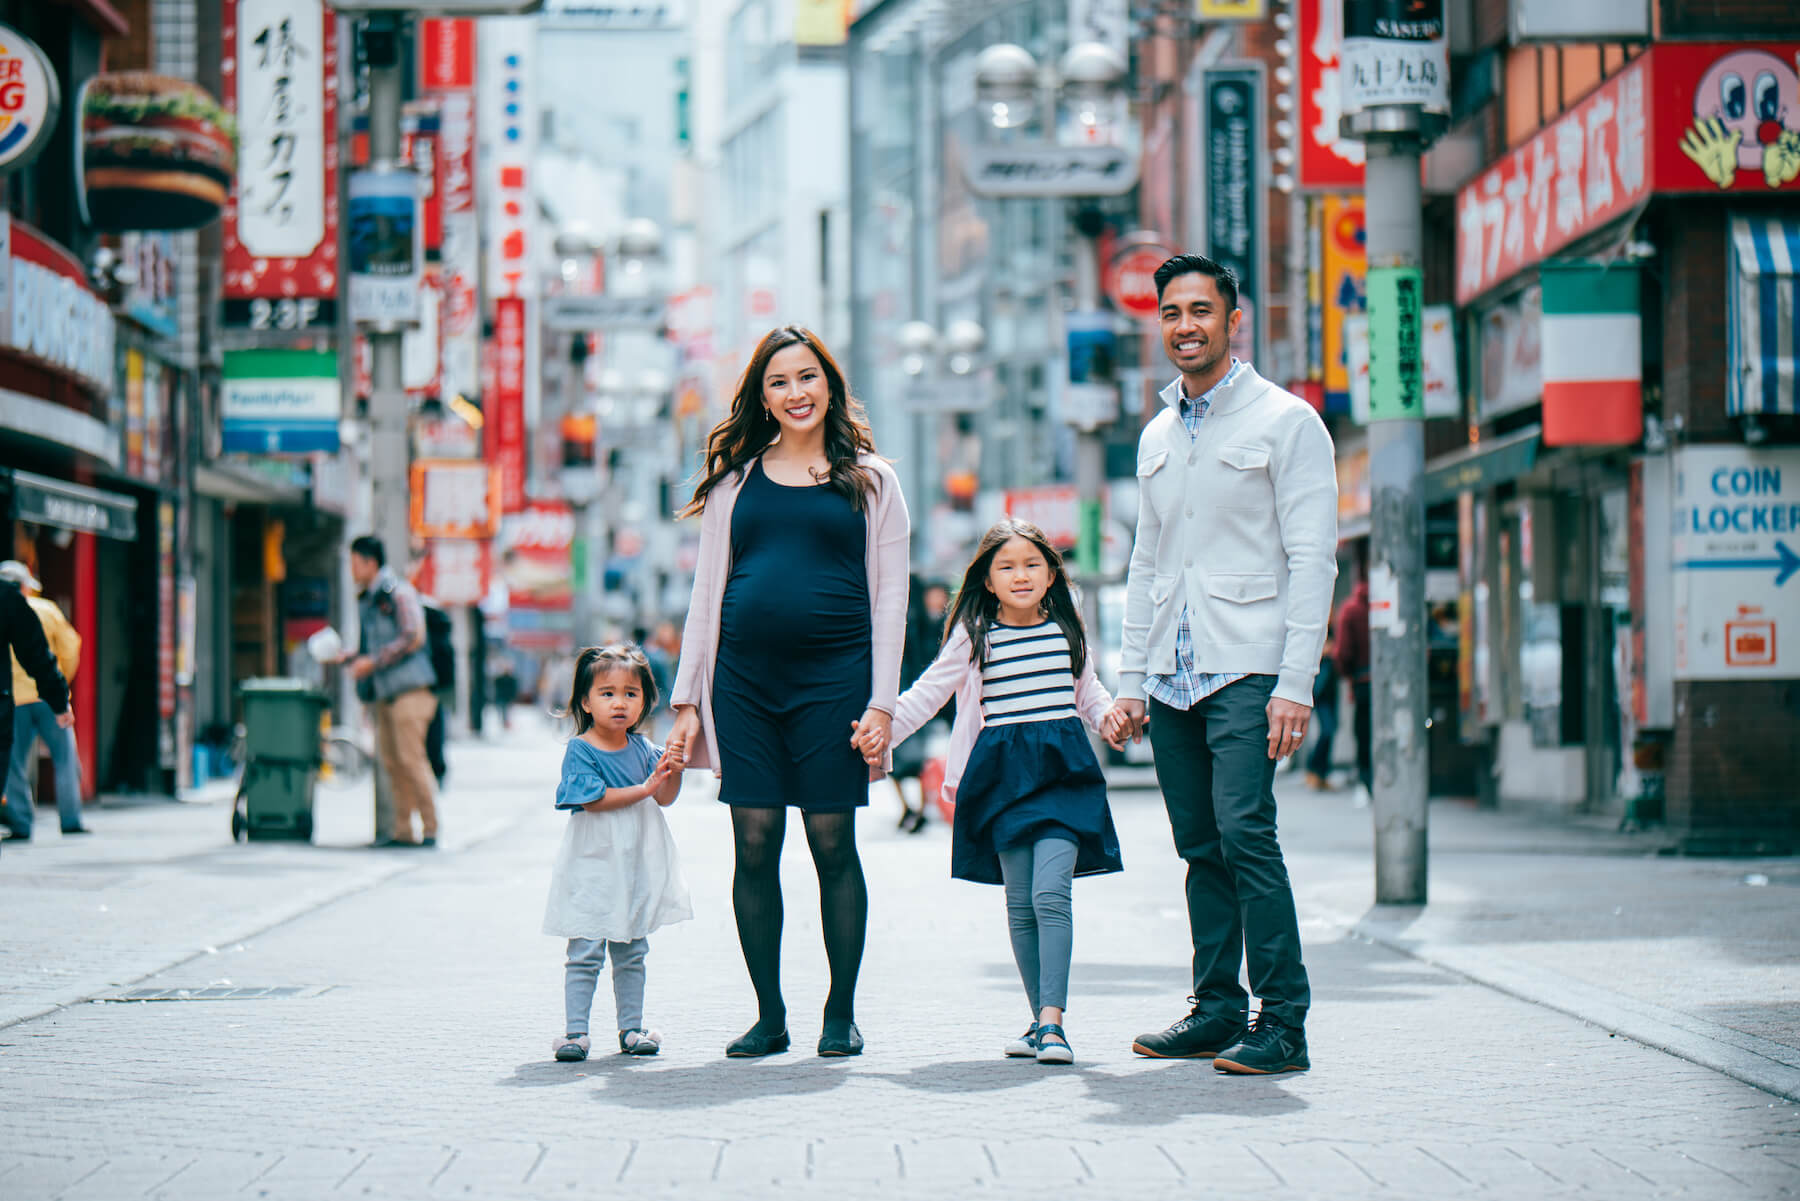 a family of 4, and the mother is pregnant, standing on the street holding hands in Tokyo, Japan